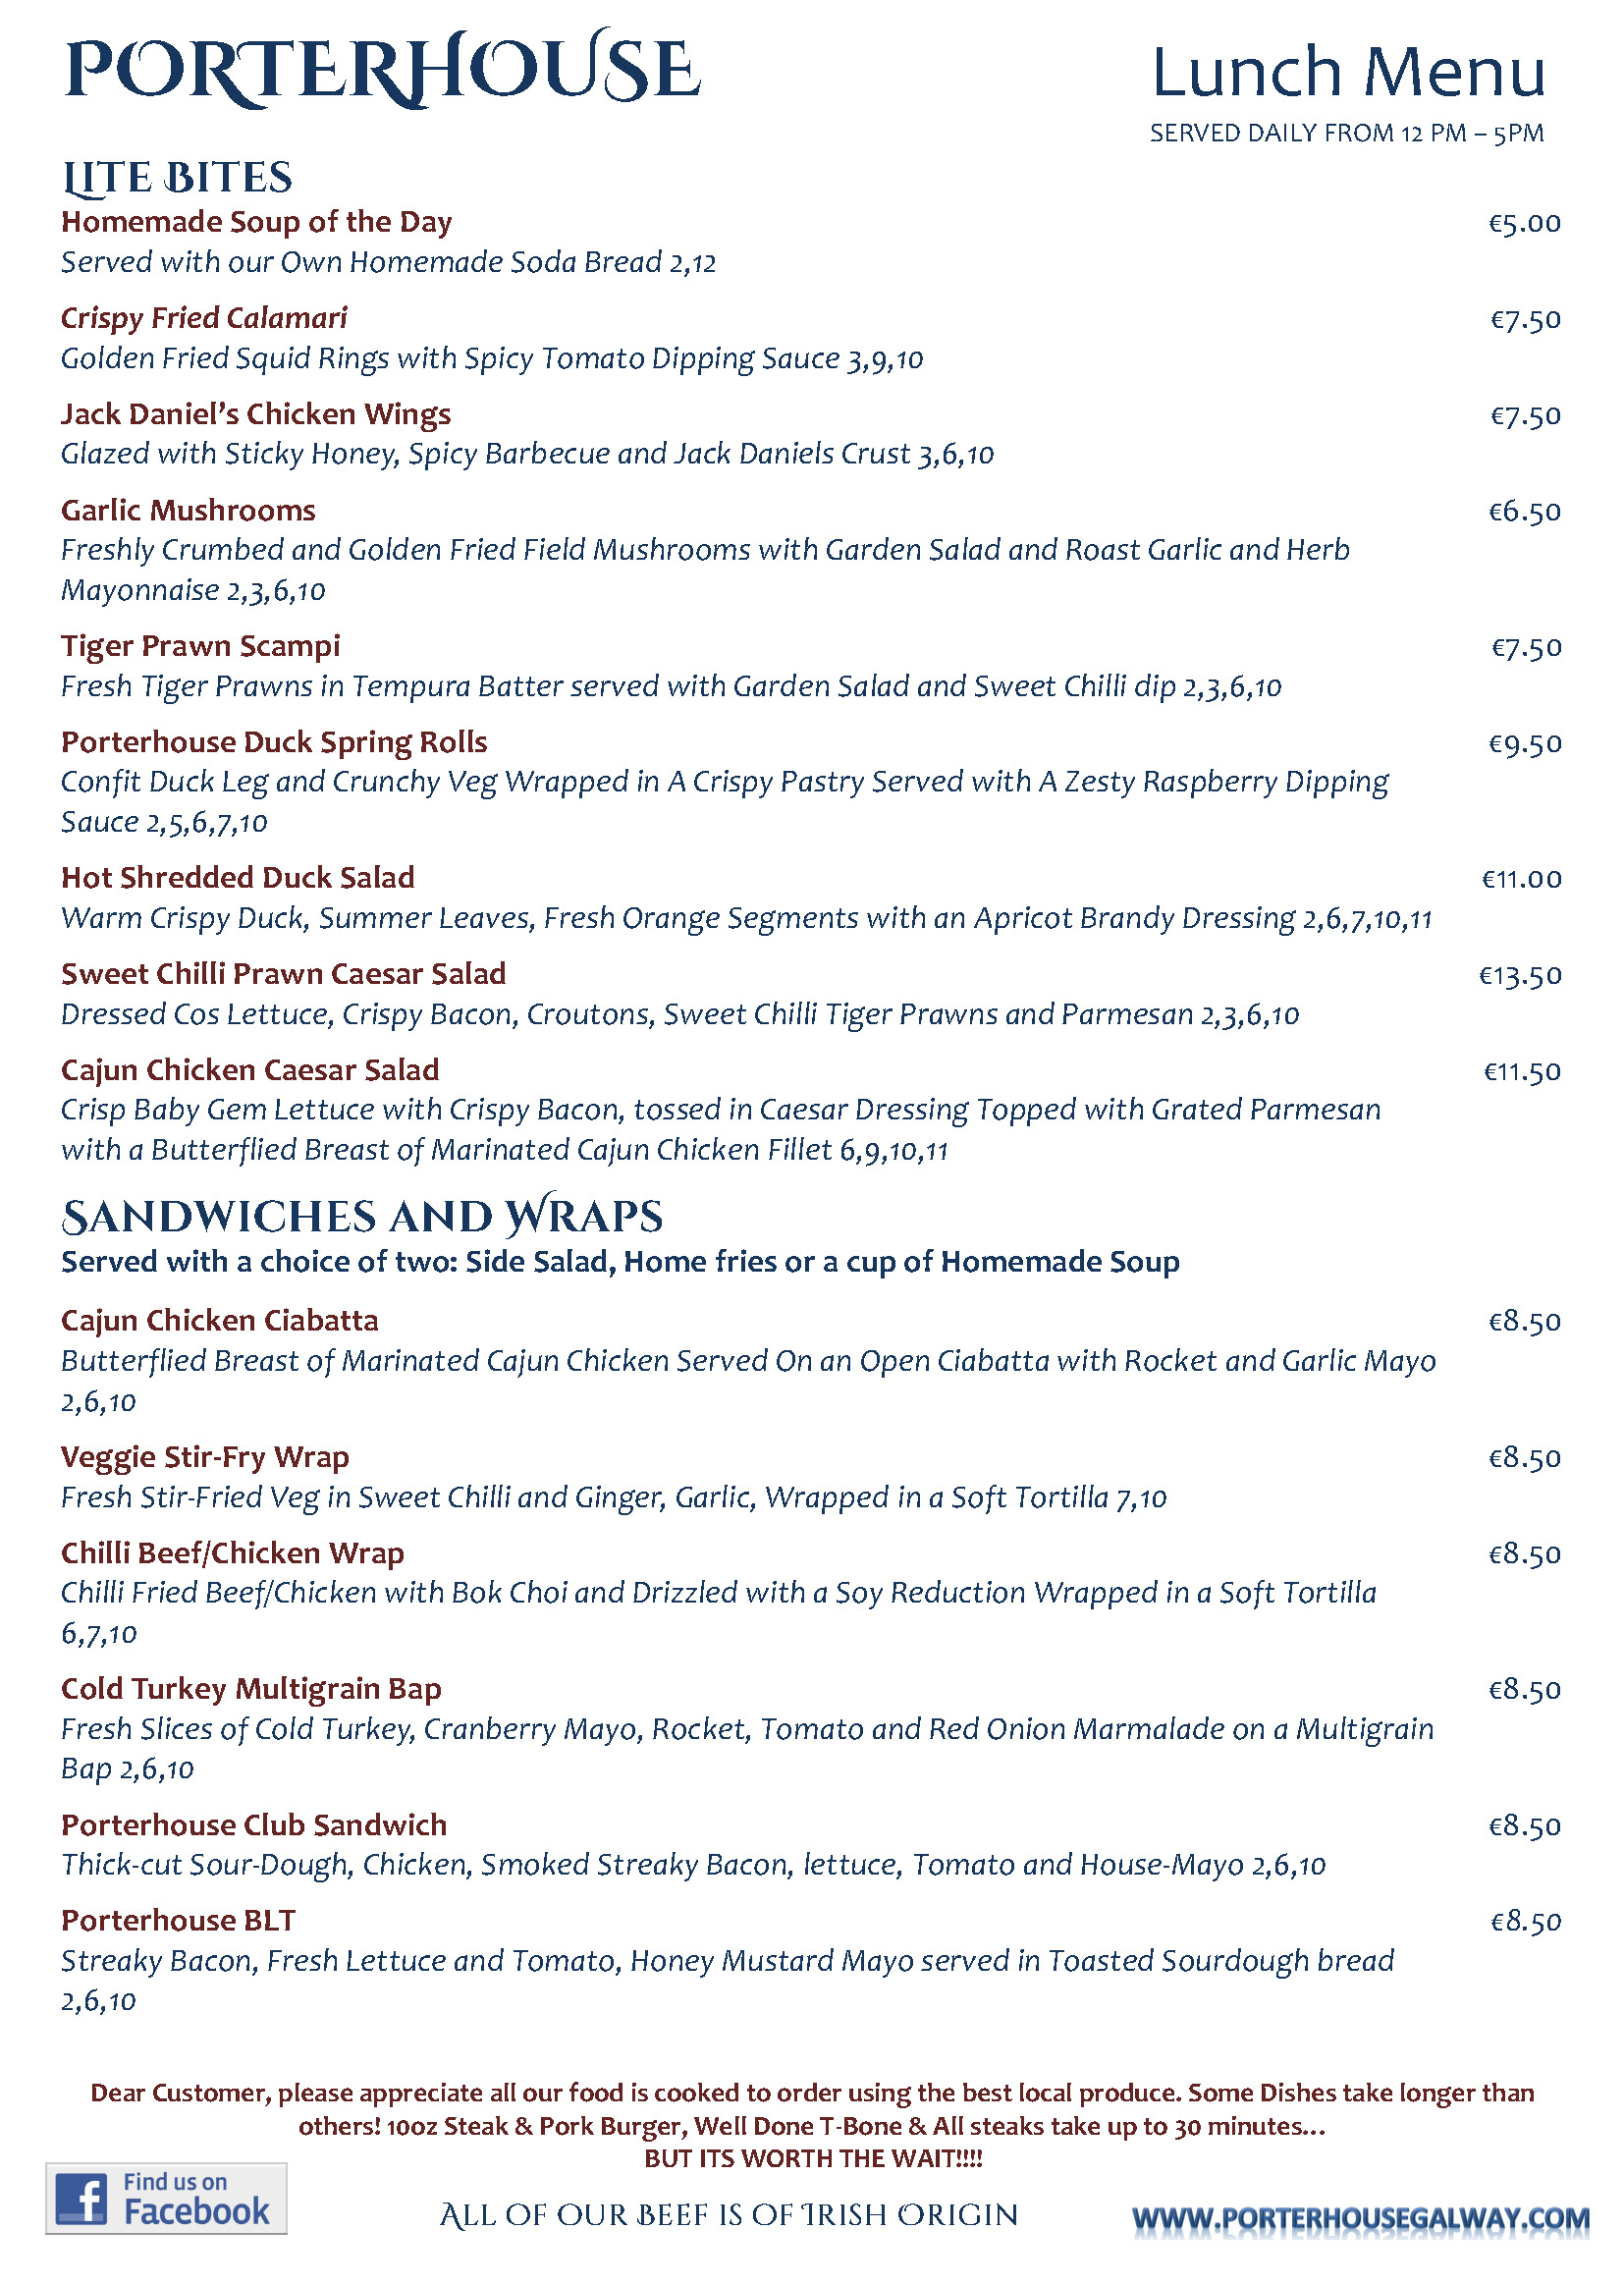 Porterhouse Galway - Lunch Menu - Final 19.07.2018_Page_1.jpg